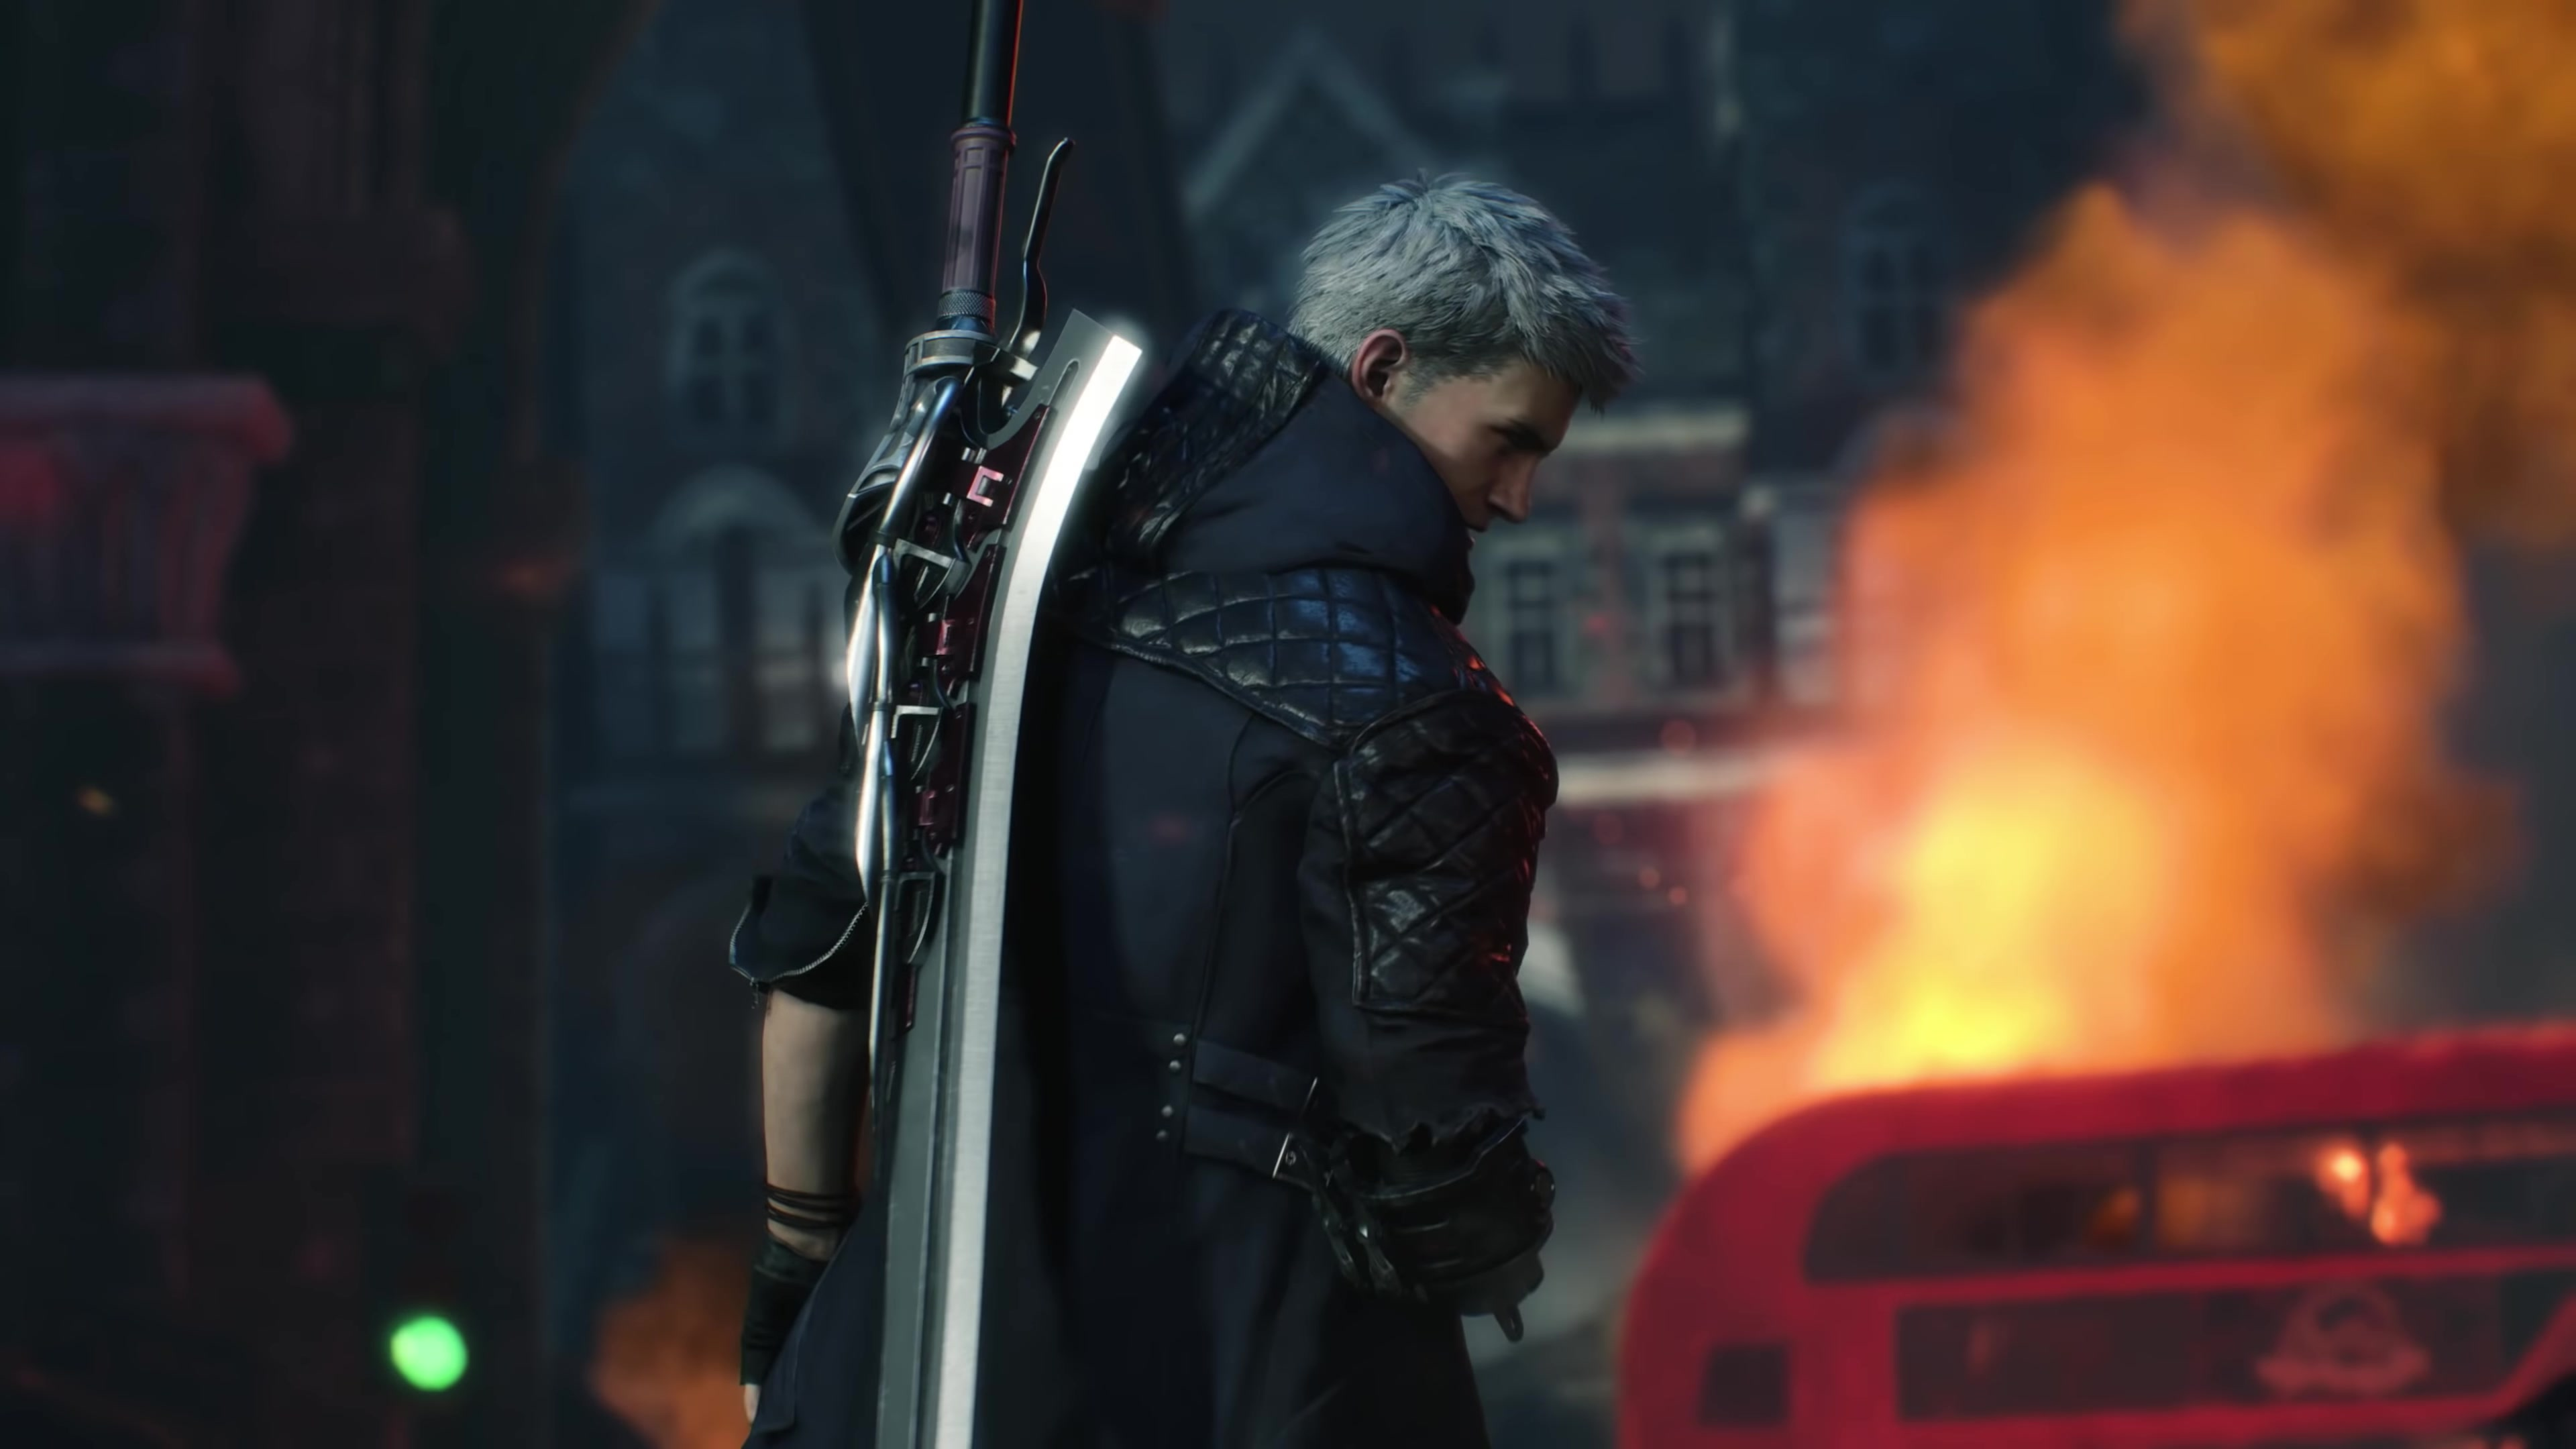 Devil May Cry 5 070.jpg - Devil May Cry 5